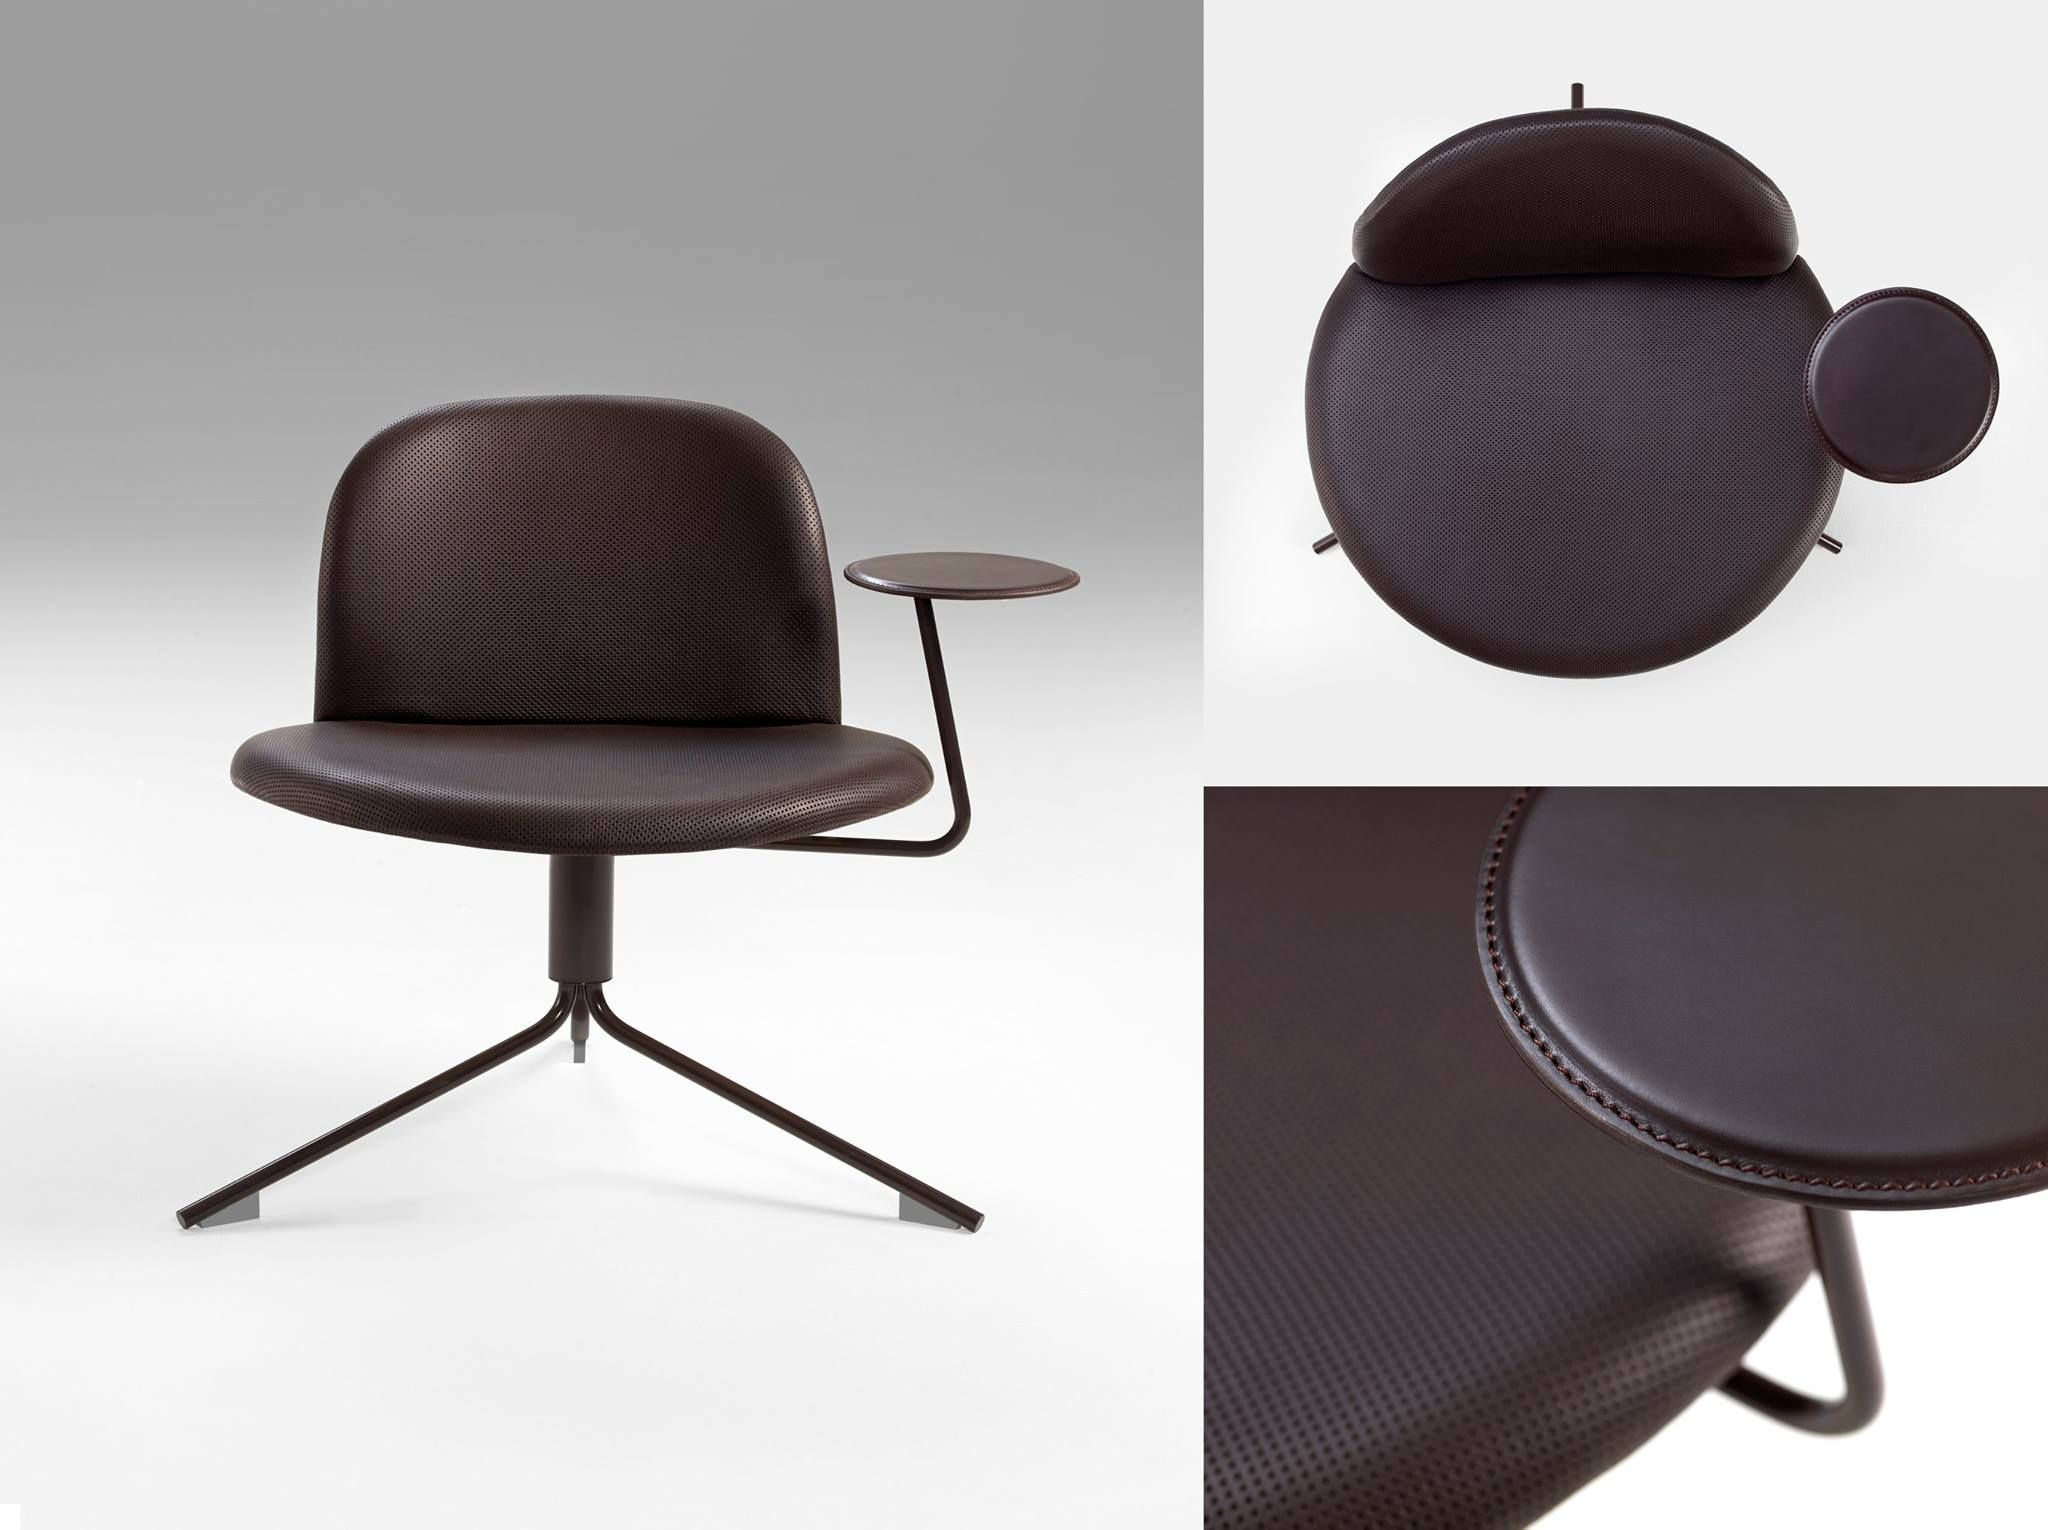 Satellite Chair Satellite Chair Designed By Richard Hutten For Offecct A